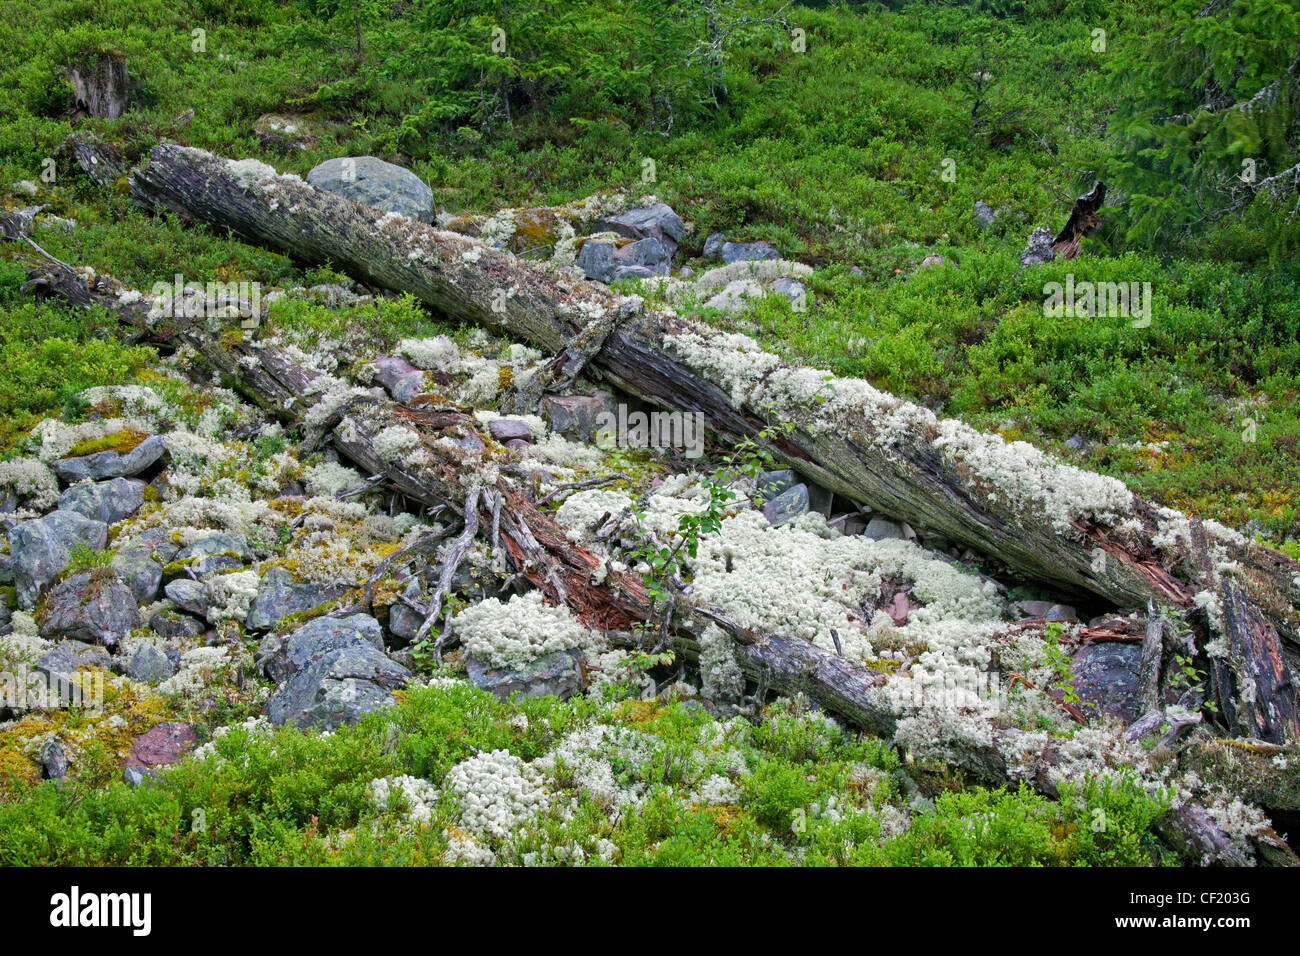 Fallen pine tree trunk covered in reindeer lichen left to rot in virgin forest at Fulufjaellet / Fulufjället - Stock Image